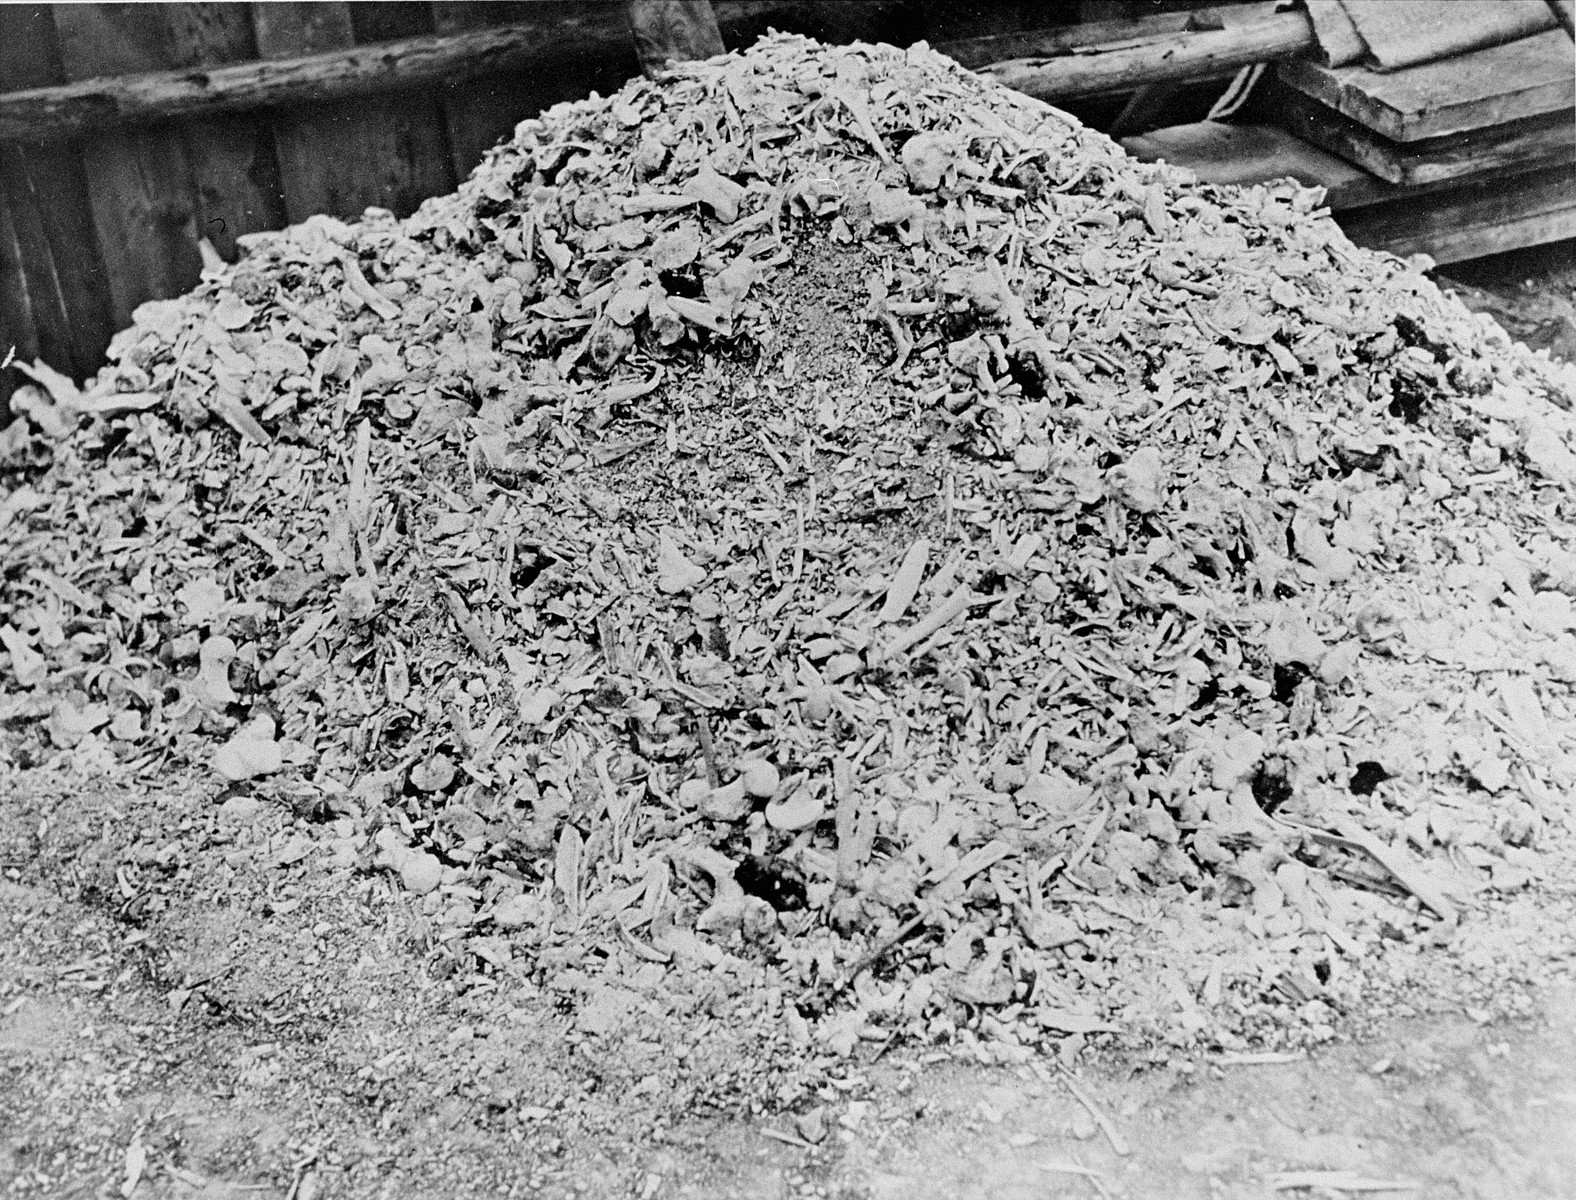 A heap of ashes and bones shoveled out of the crematoria ovens in Buchenwald concentration camp.